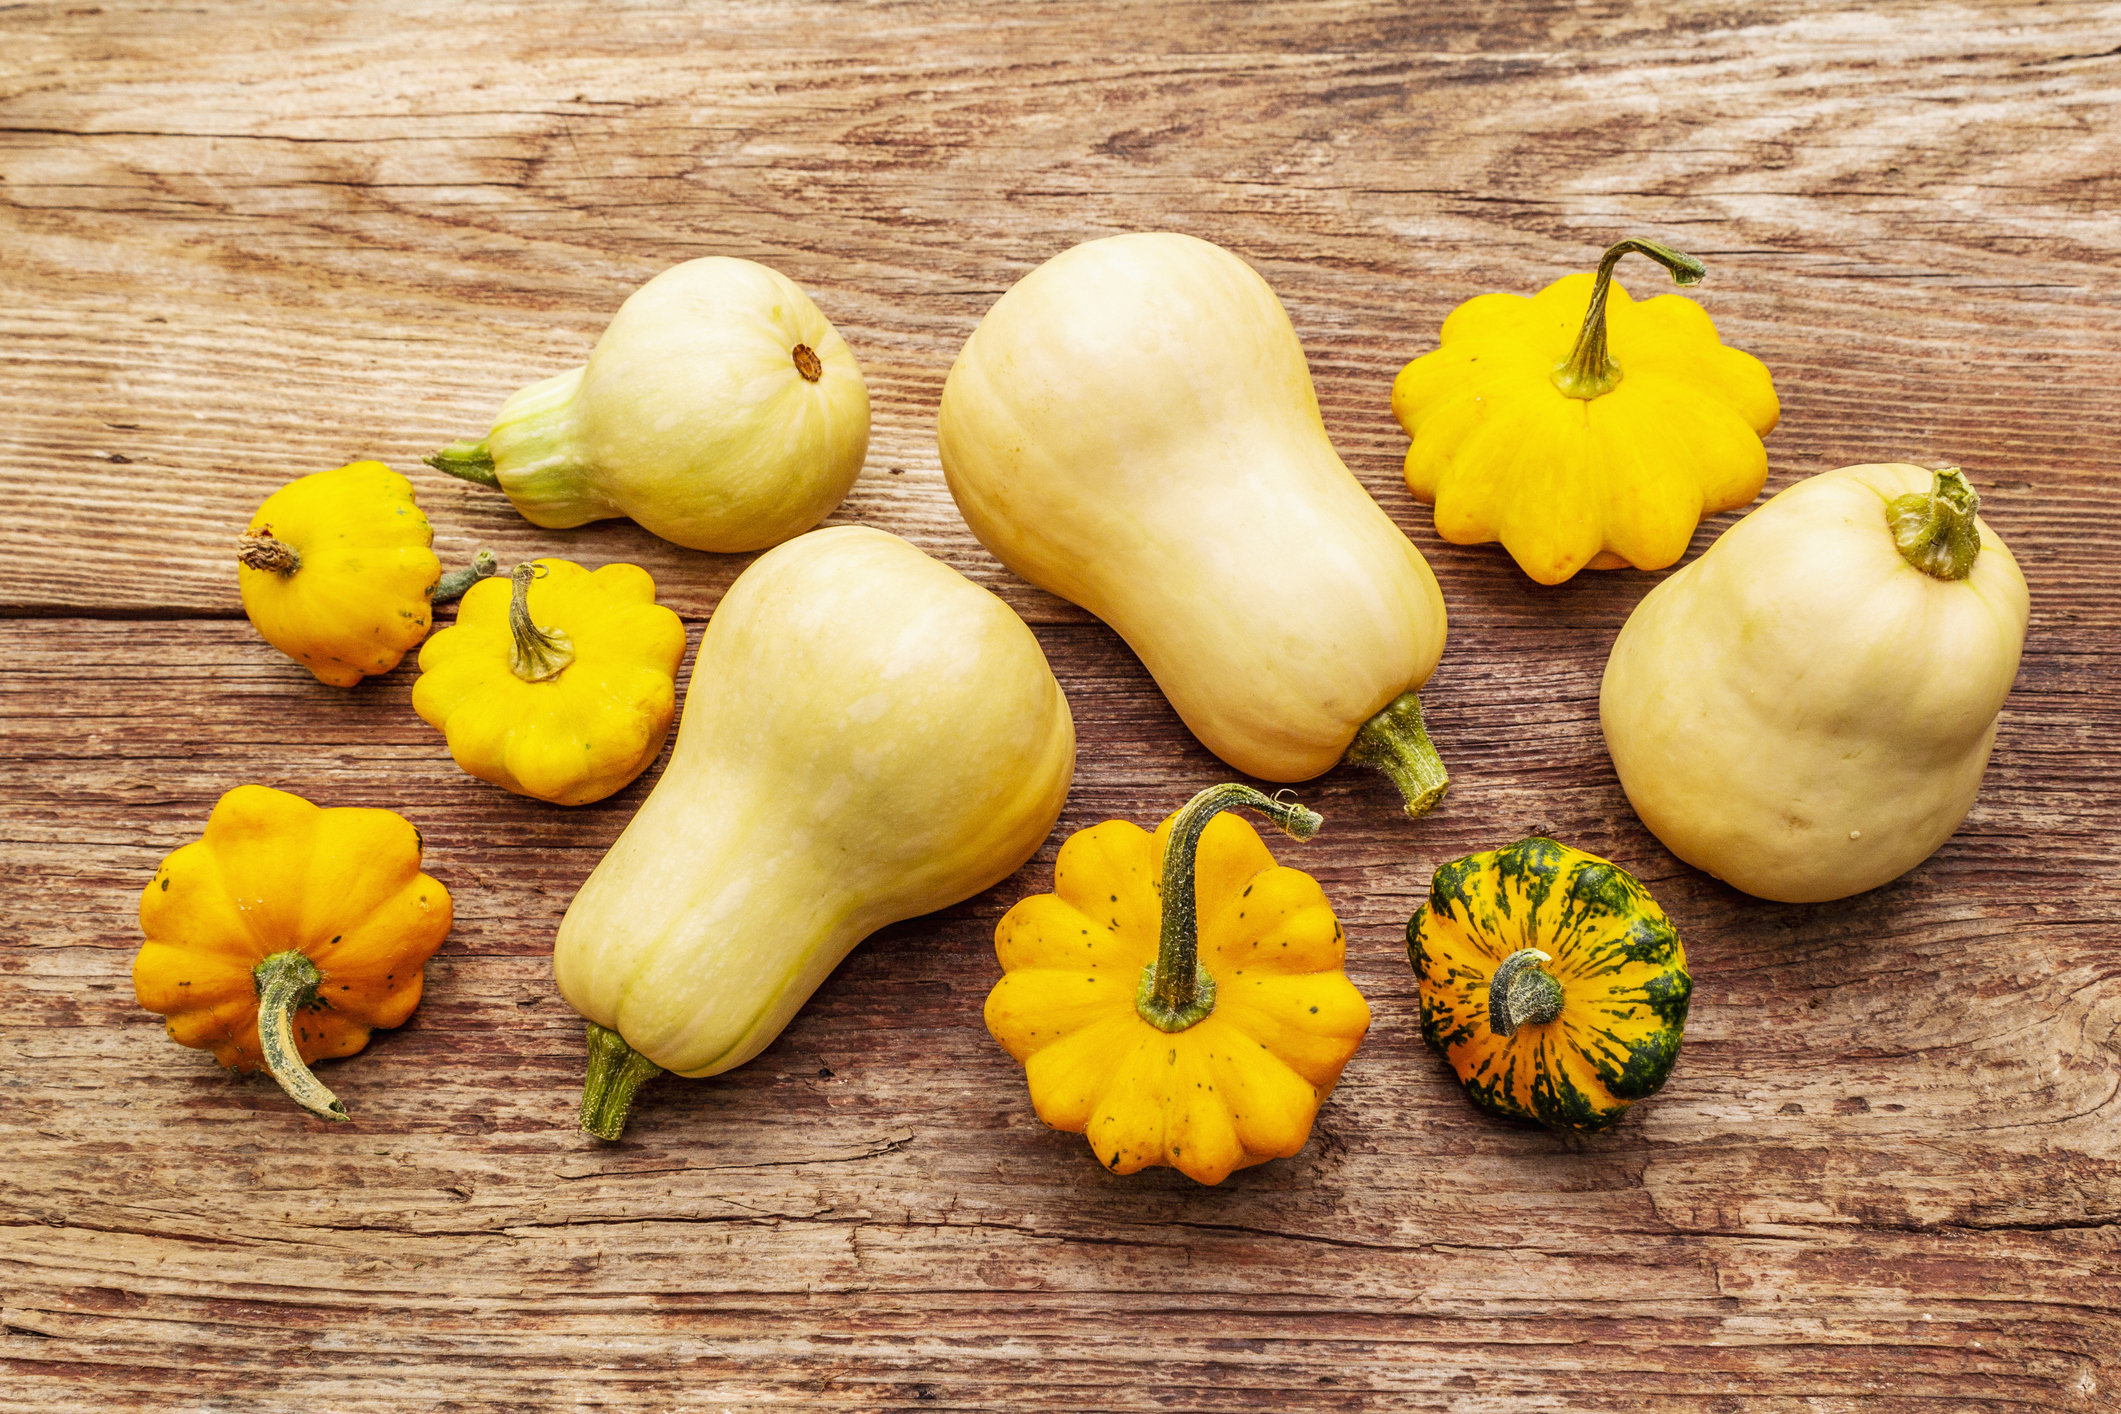 Winter squash: Time to eat this 'Blue Zone' food now